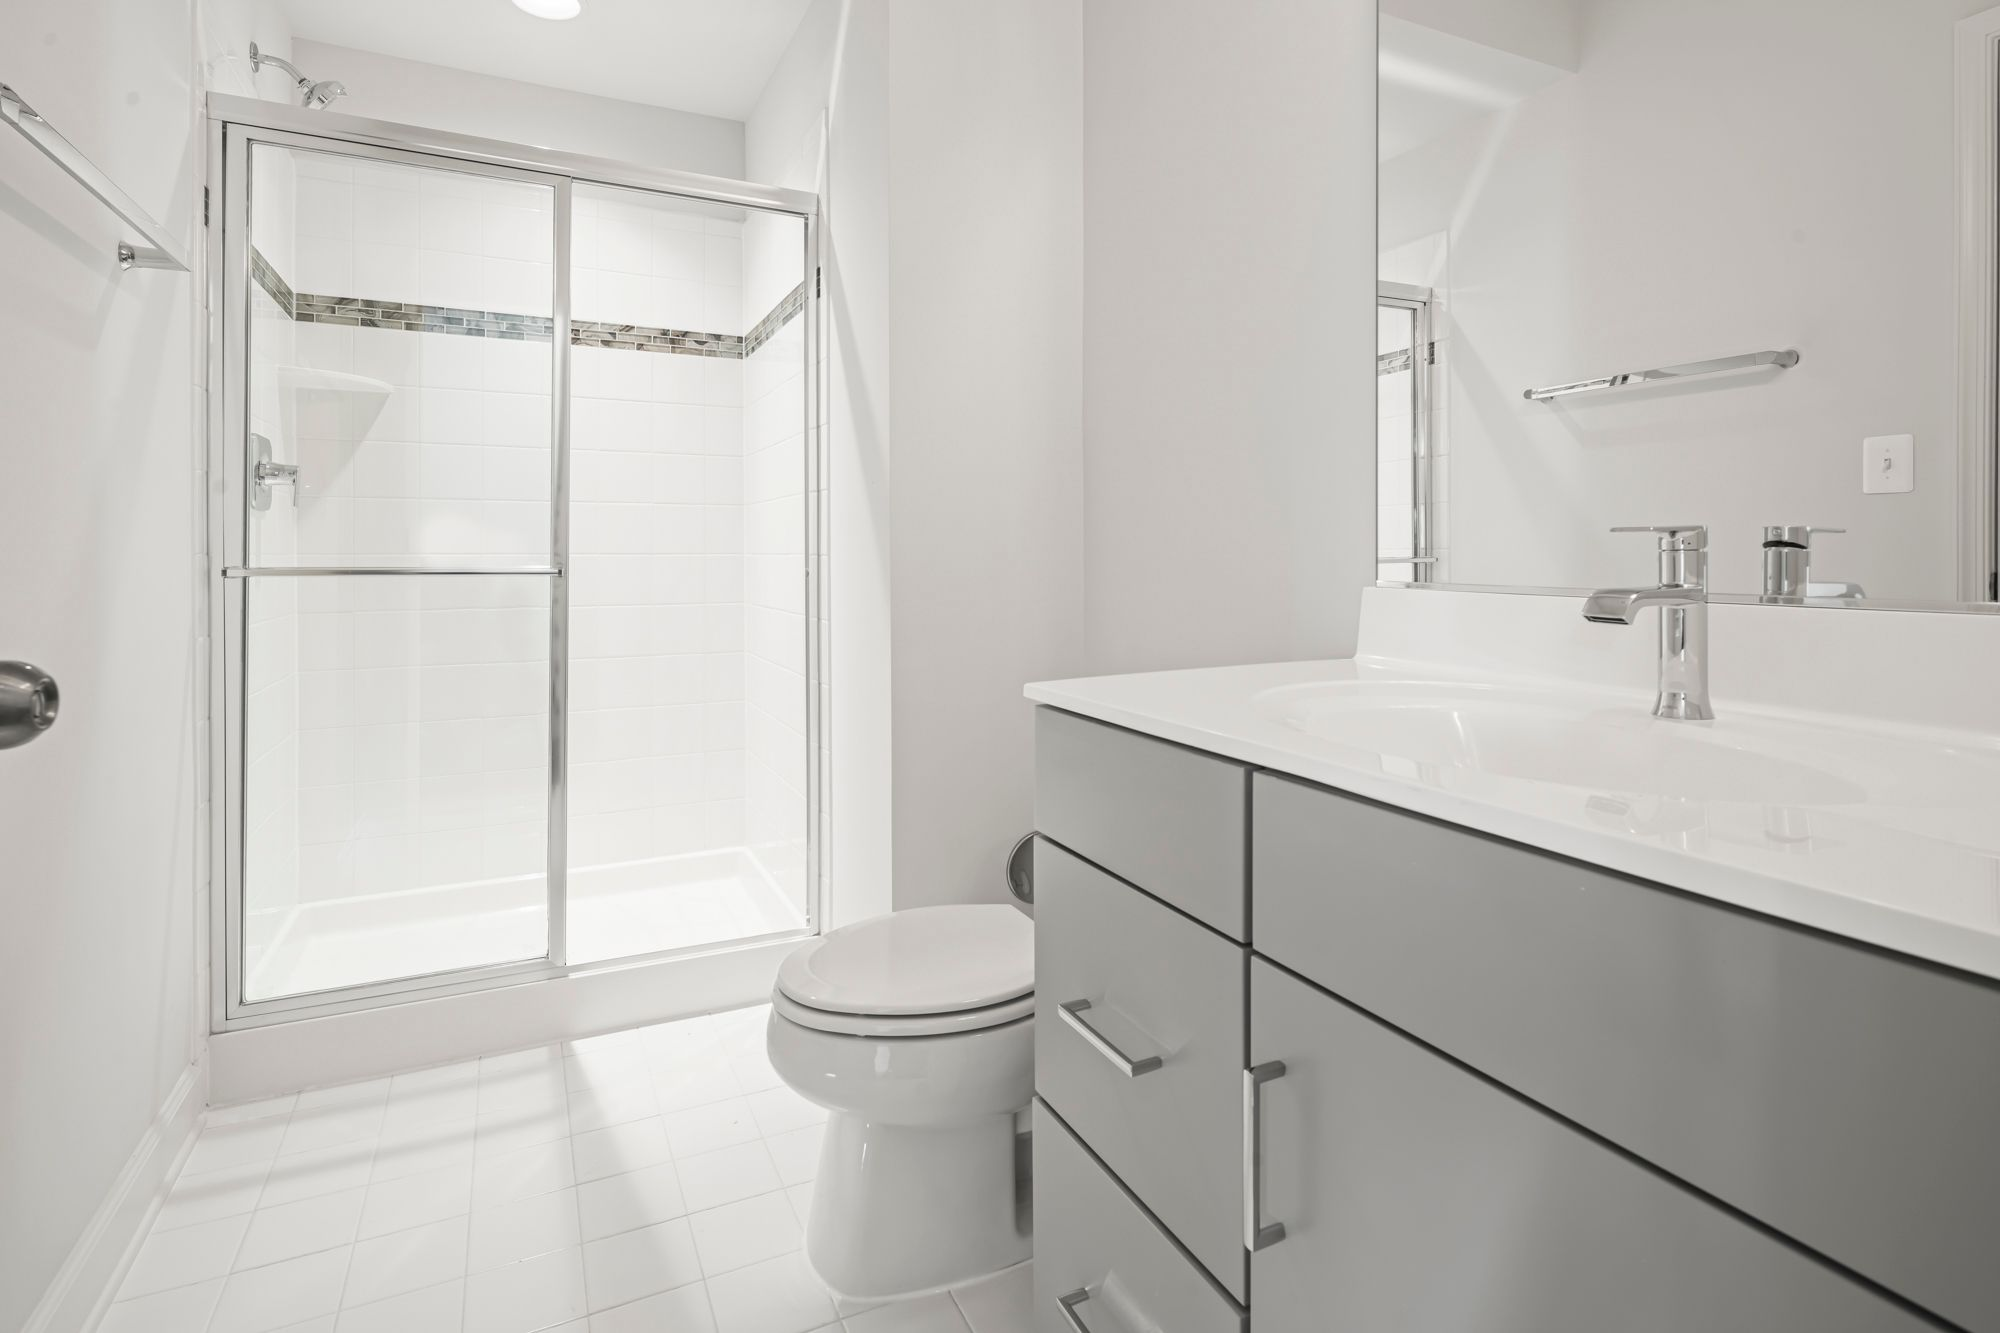 Bathroom featured in the Adams By Integrity Homes in Washington, MD